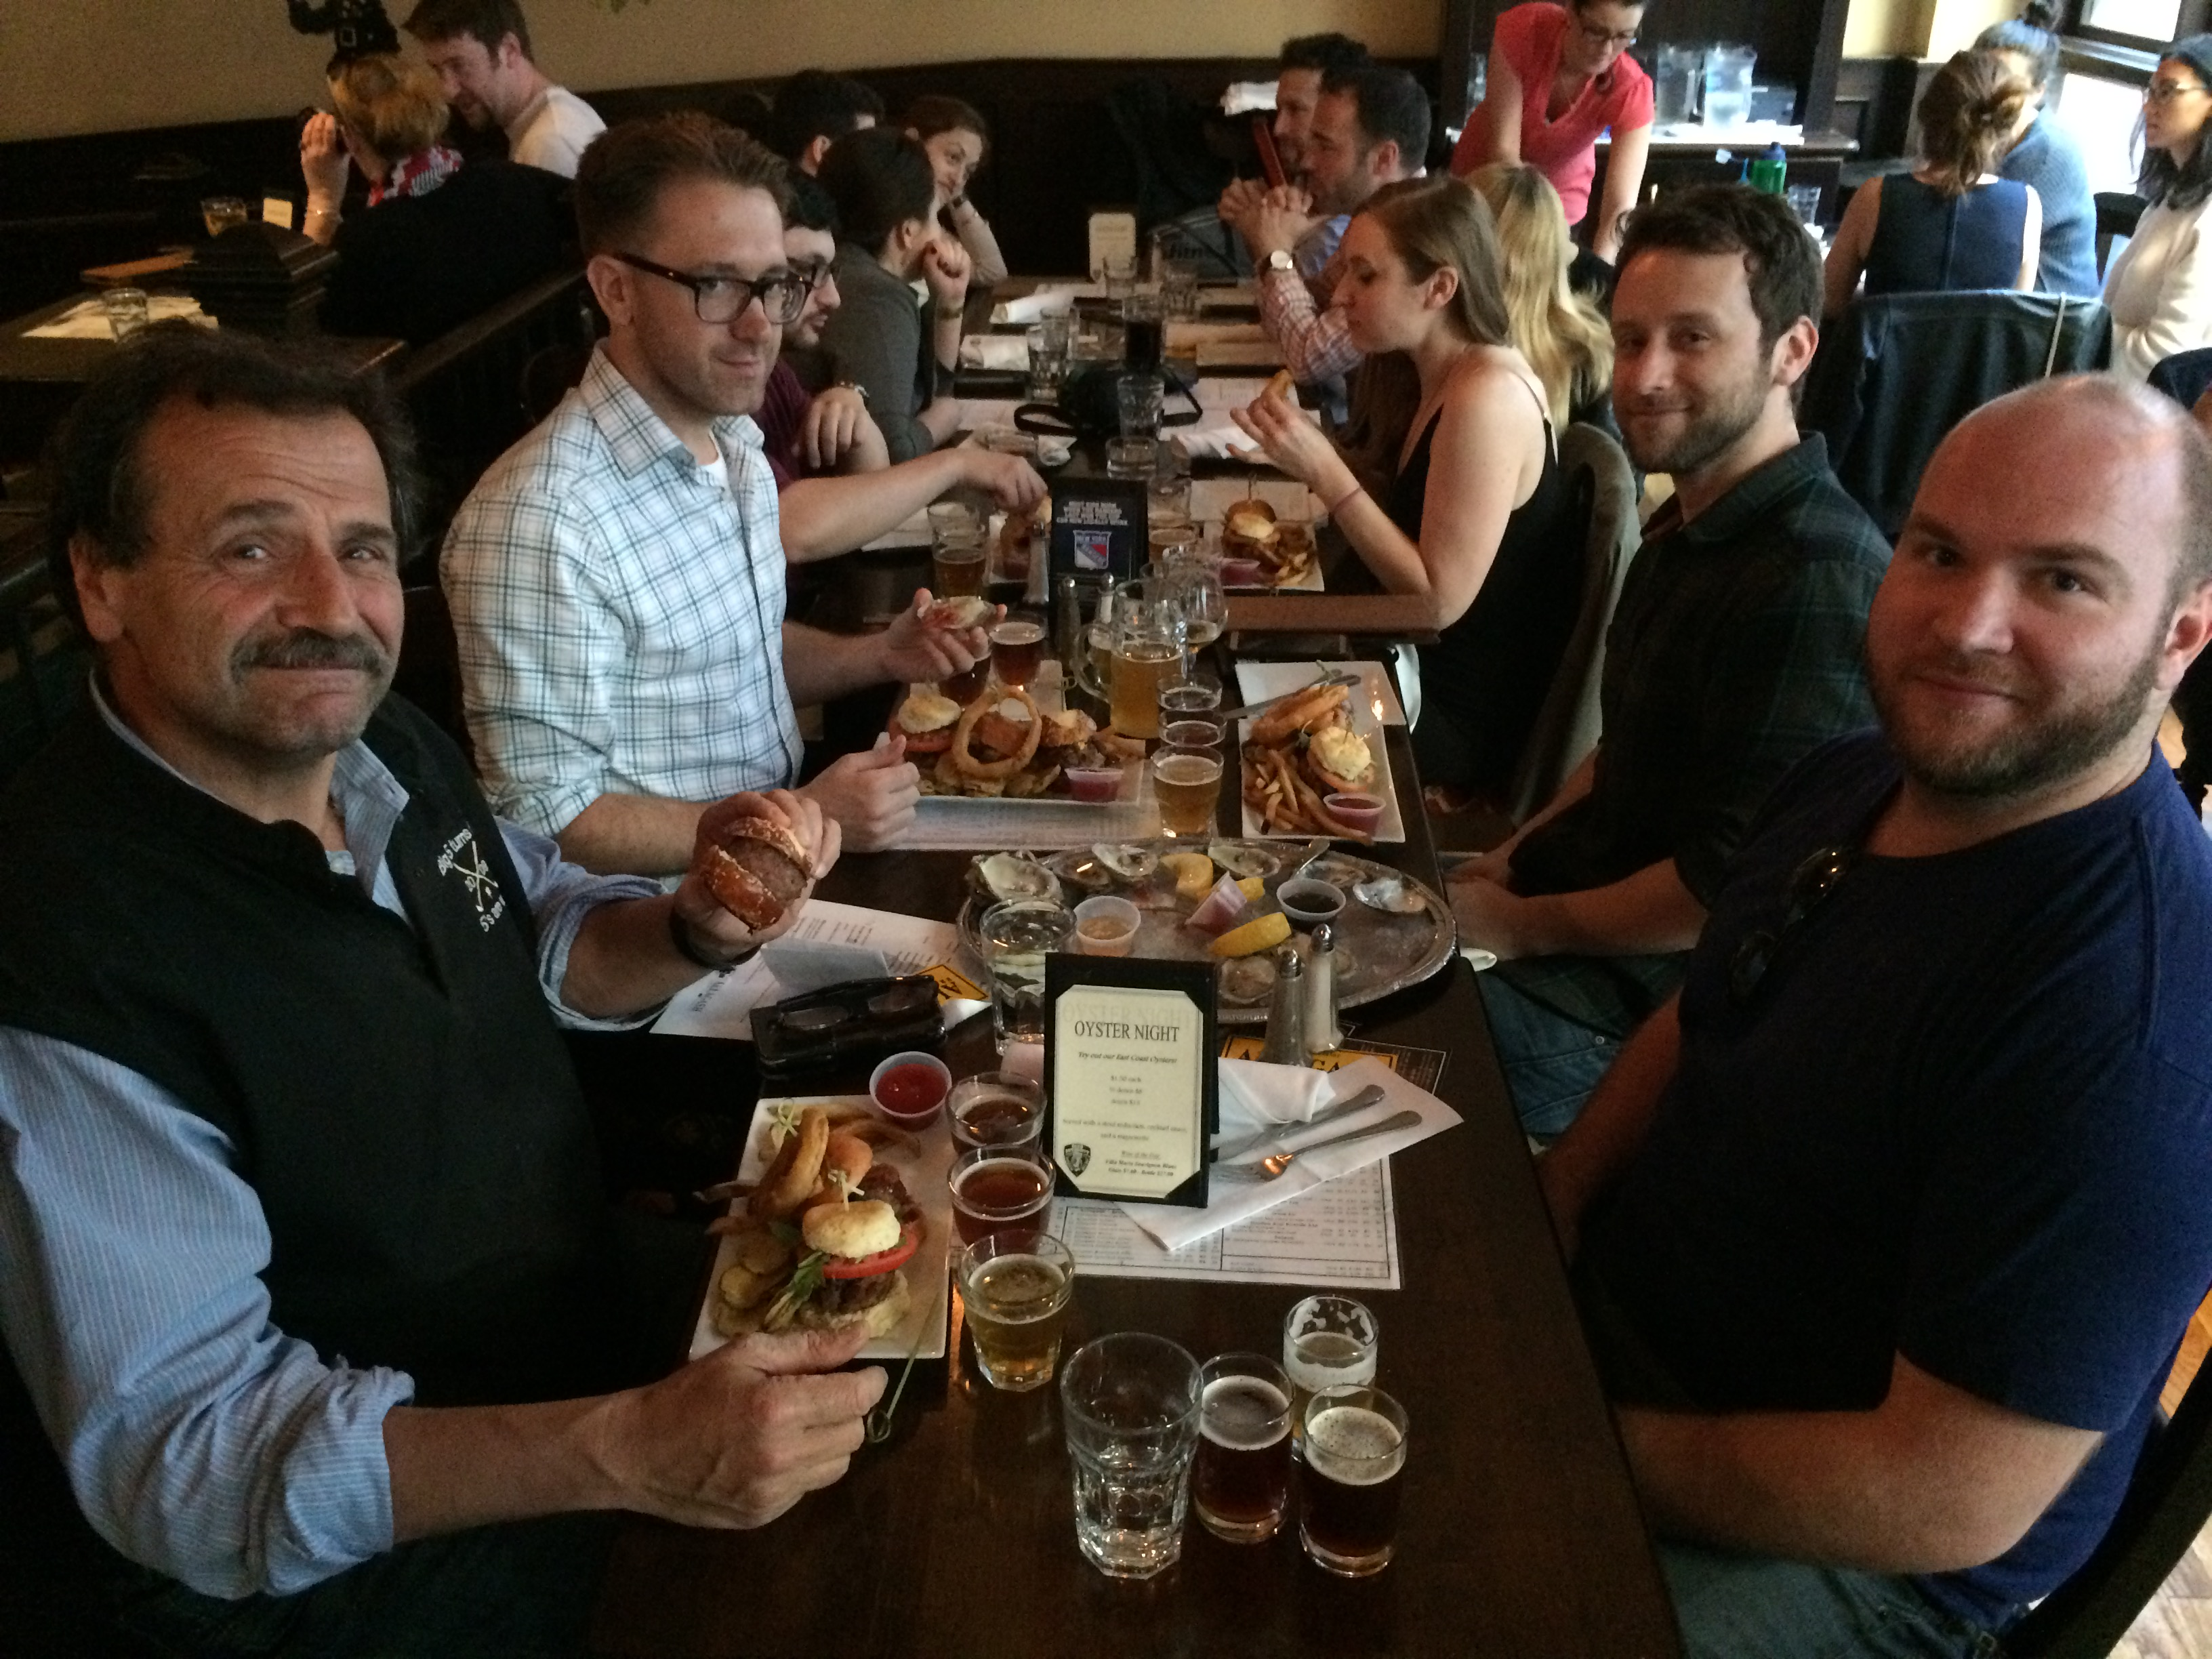 Schweid-and-Sons-Beer-Burger-Dinner-Beer-Authority-2015-NY-Burger-Week-2285